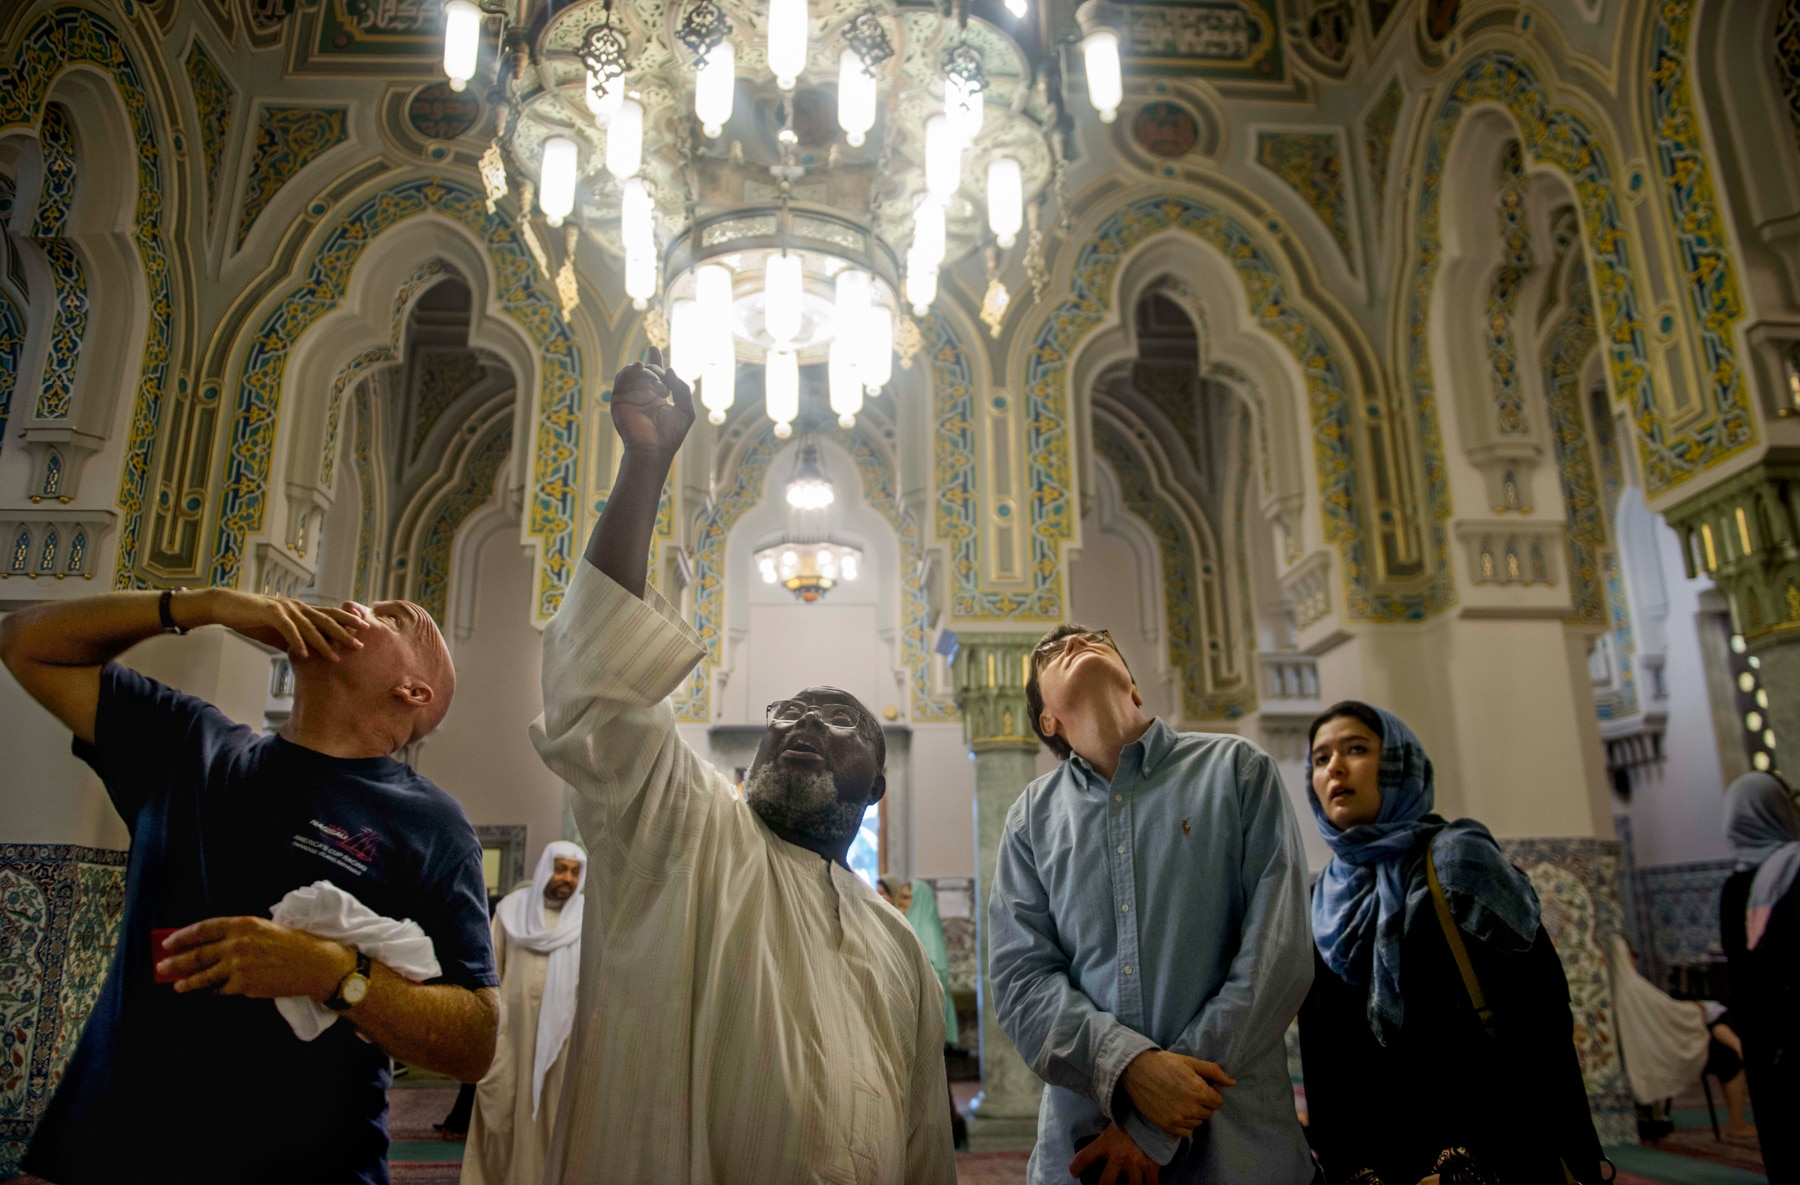 People looking up at writings on wall in mosque (© Amanda Voisard for The Washington Post via Getty Images)